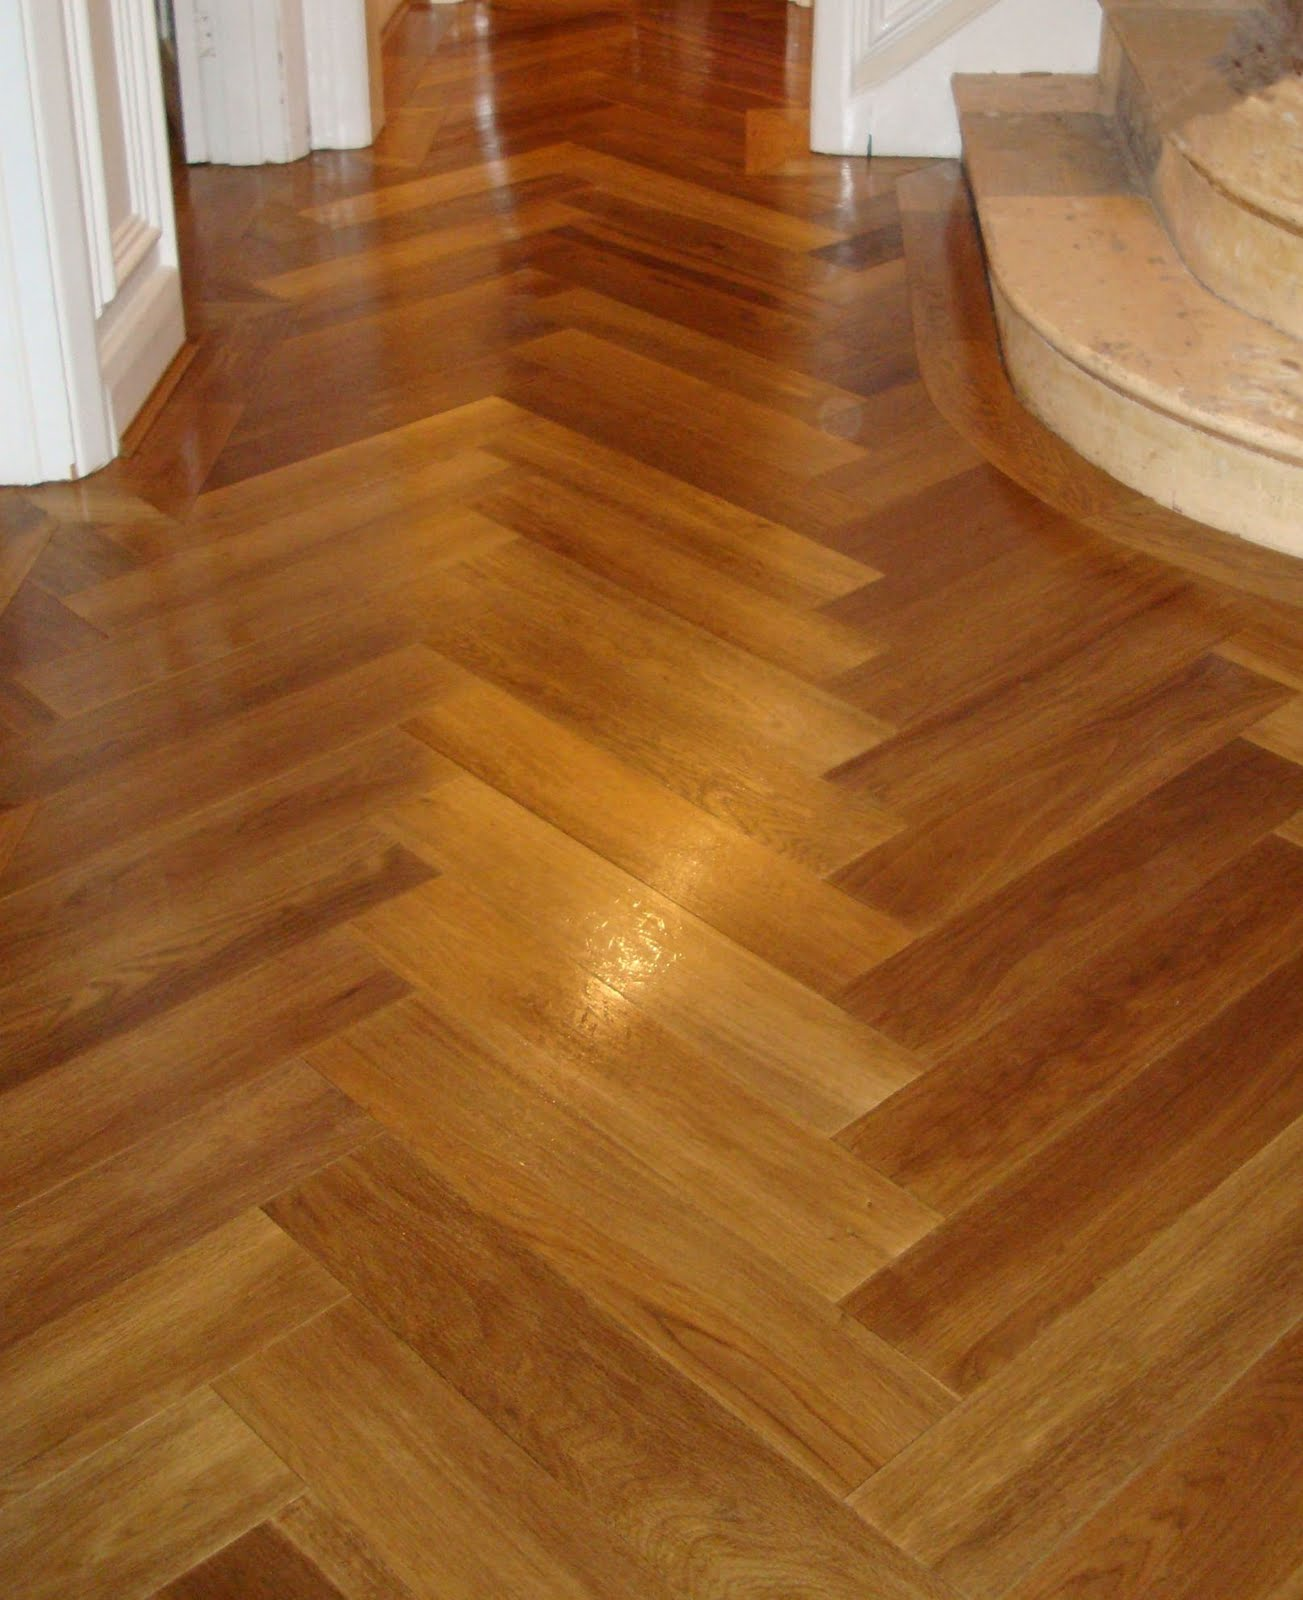 Hardwood floor pattern design ideas joy studio design for Where to get hardwood floors